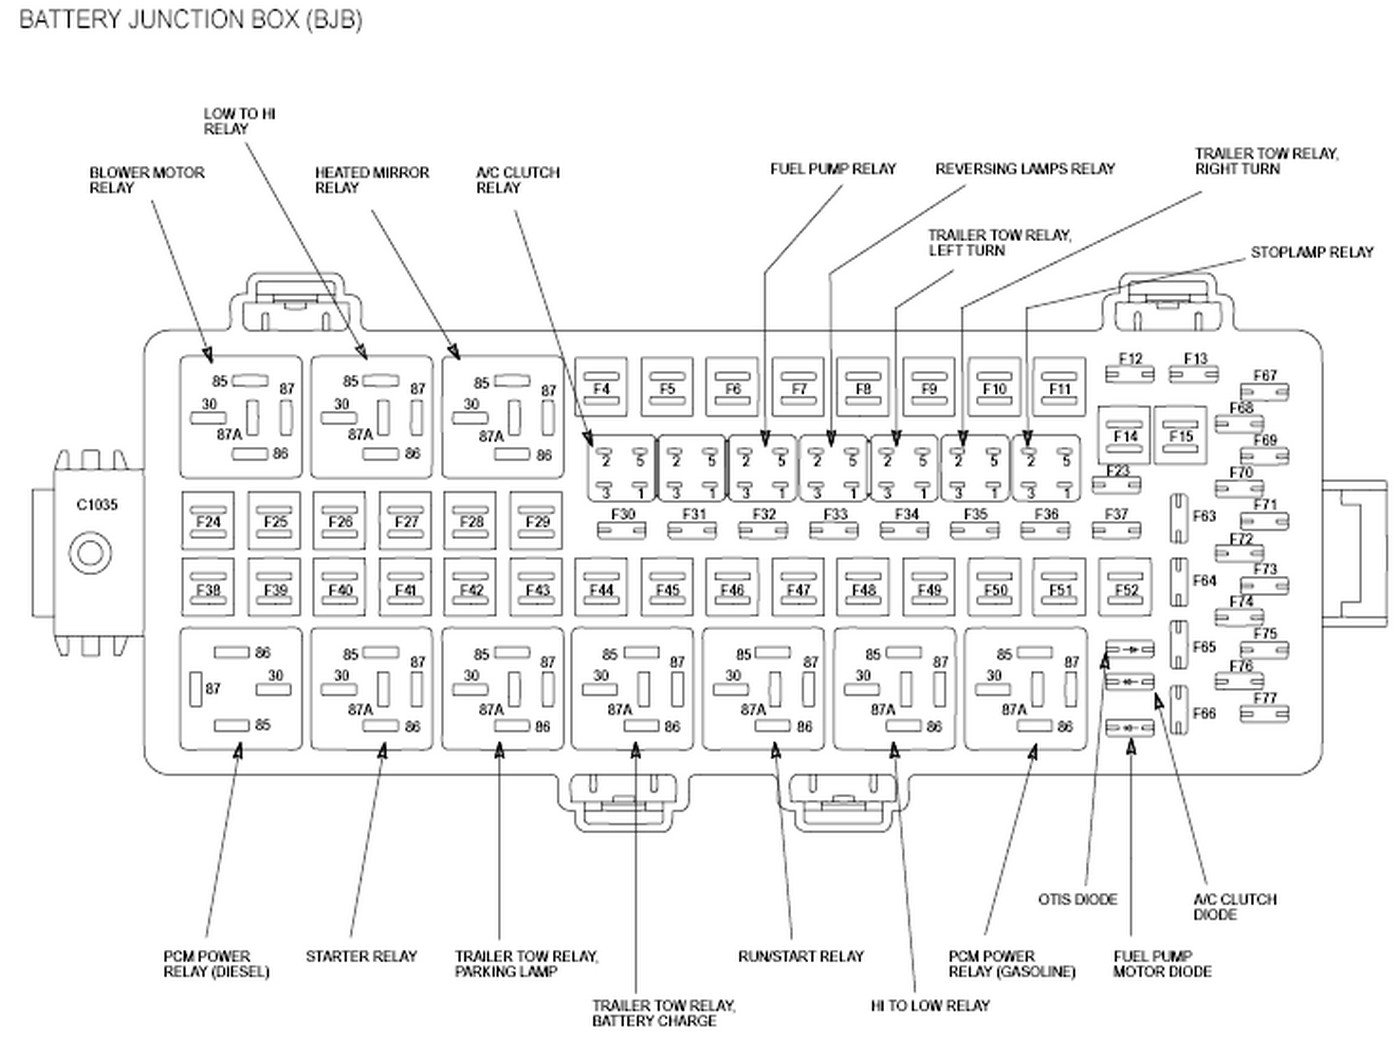 2008 ford f 350 fuse box - universal wiring diagrams wires-verify -  wires-verify.sceglicongusto.it  sceglicongusto.it